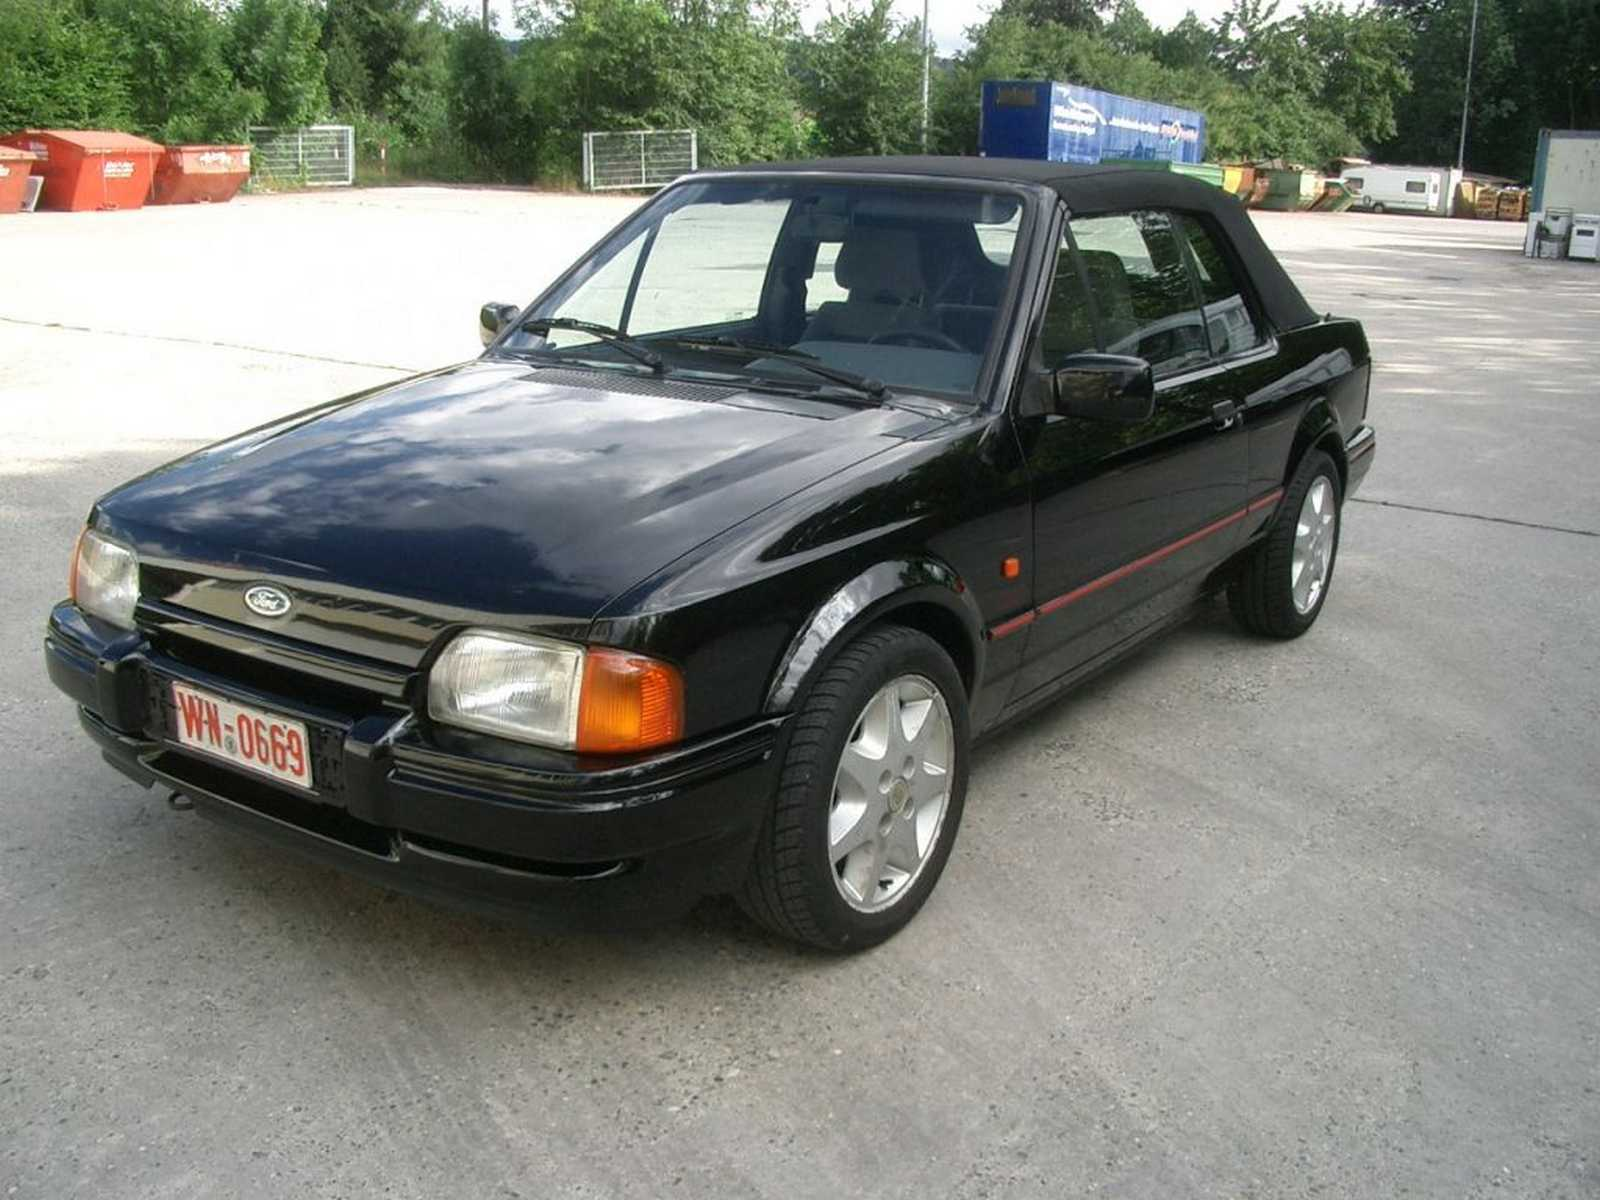 Ford Escort XR3i Cabrio